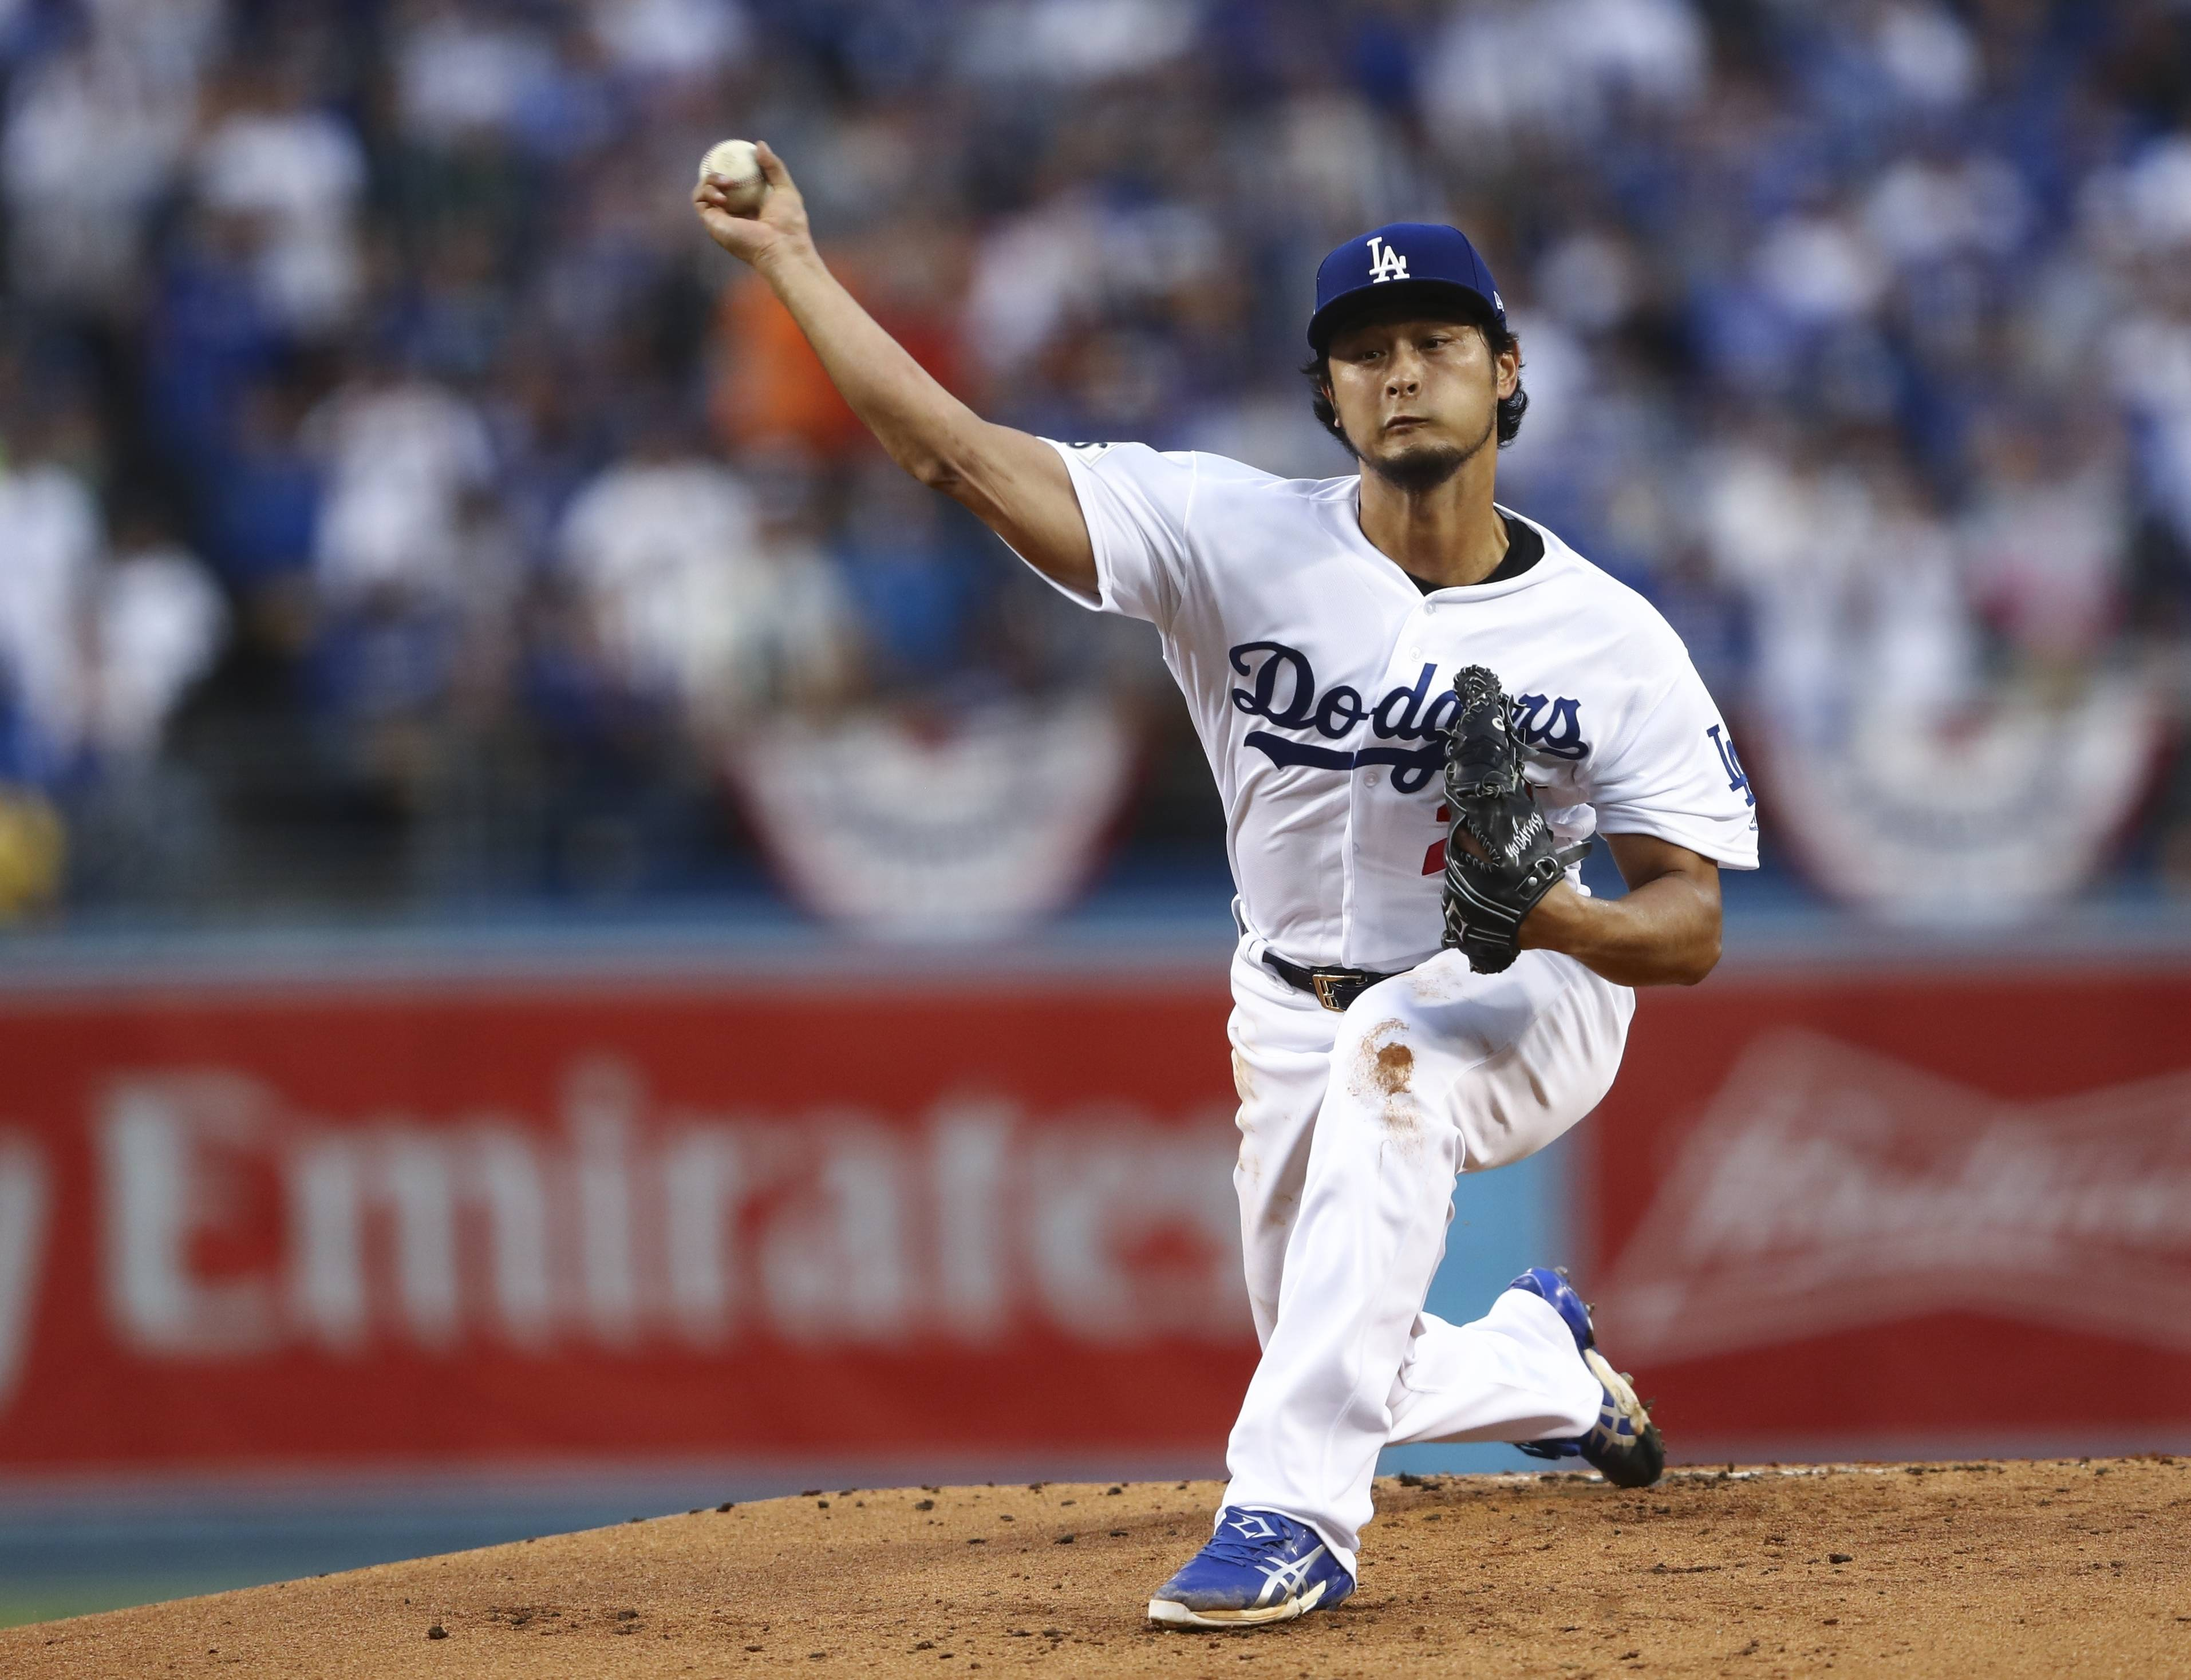 Los Angeles Dodgers starting pitcher Yu Darvish throws during the first inning of Game 7 of baseball's World Series against the Houston Astros Wednesday, Nov. 1, 2017, in Los Angeles. (AP Photo/Tim Bradbury, Pool)